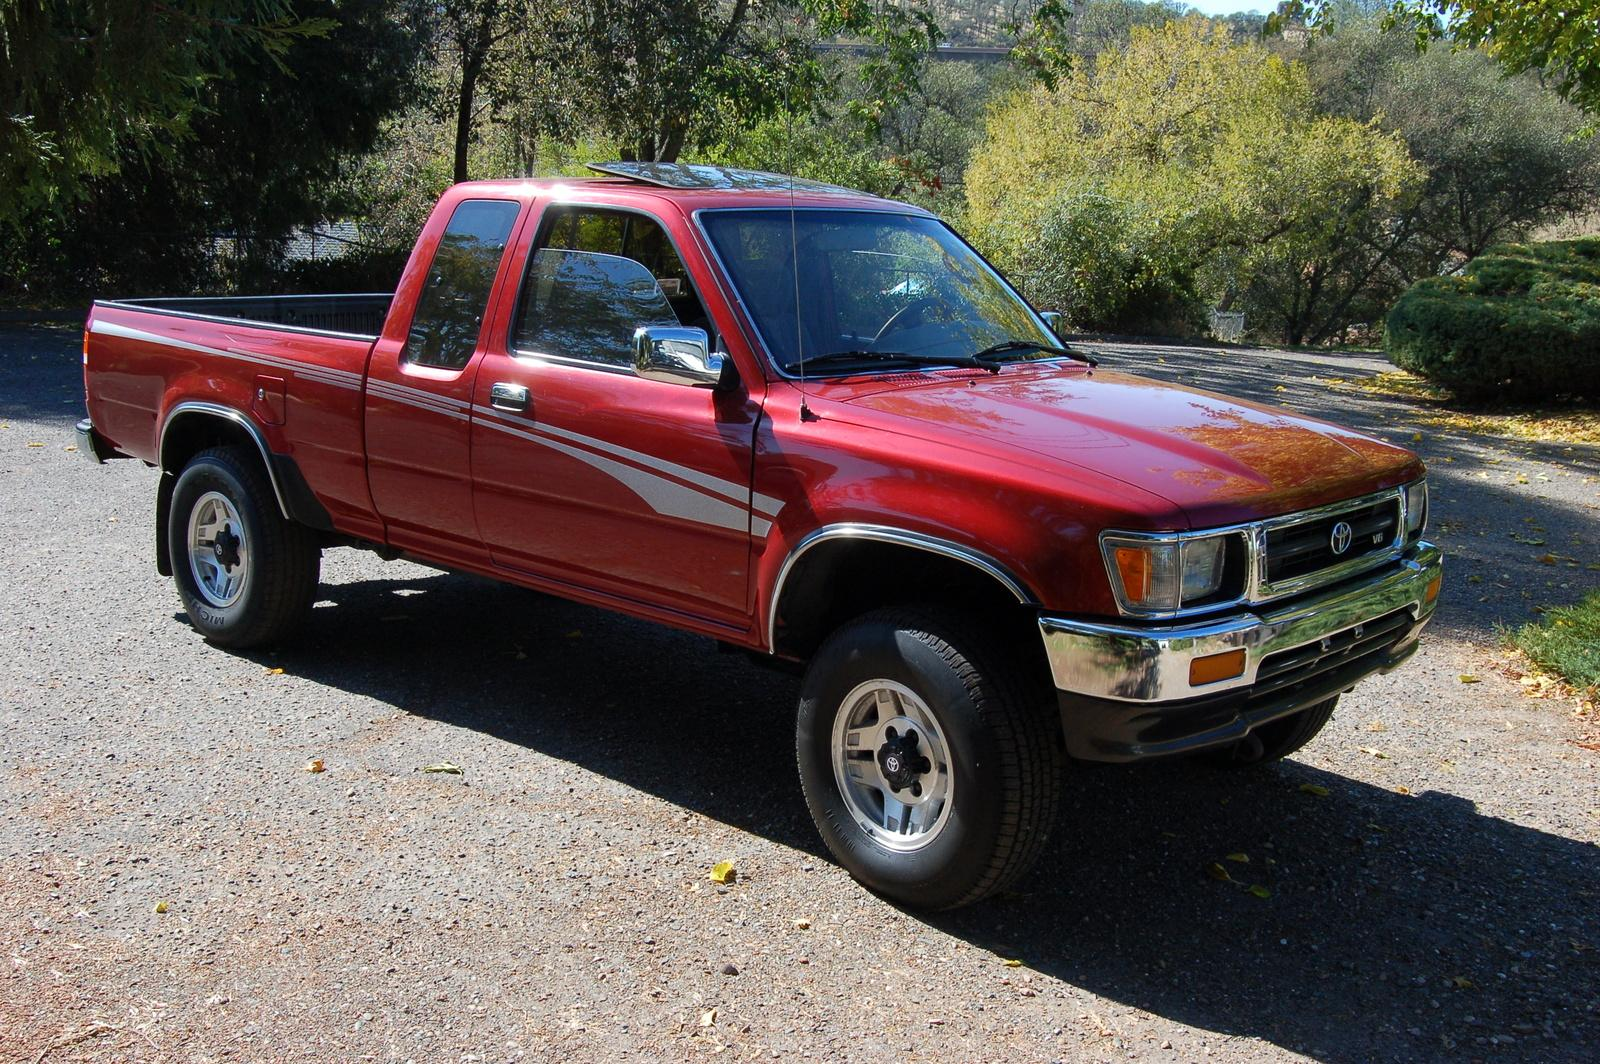 800 1024 1280 1600 origin 1993 toyota pickup